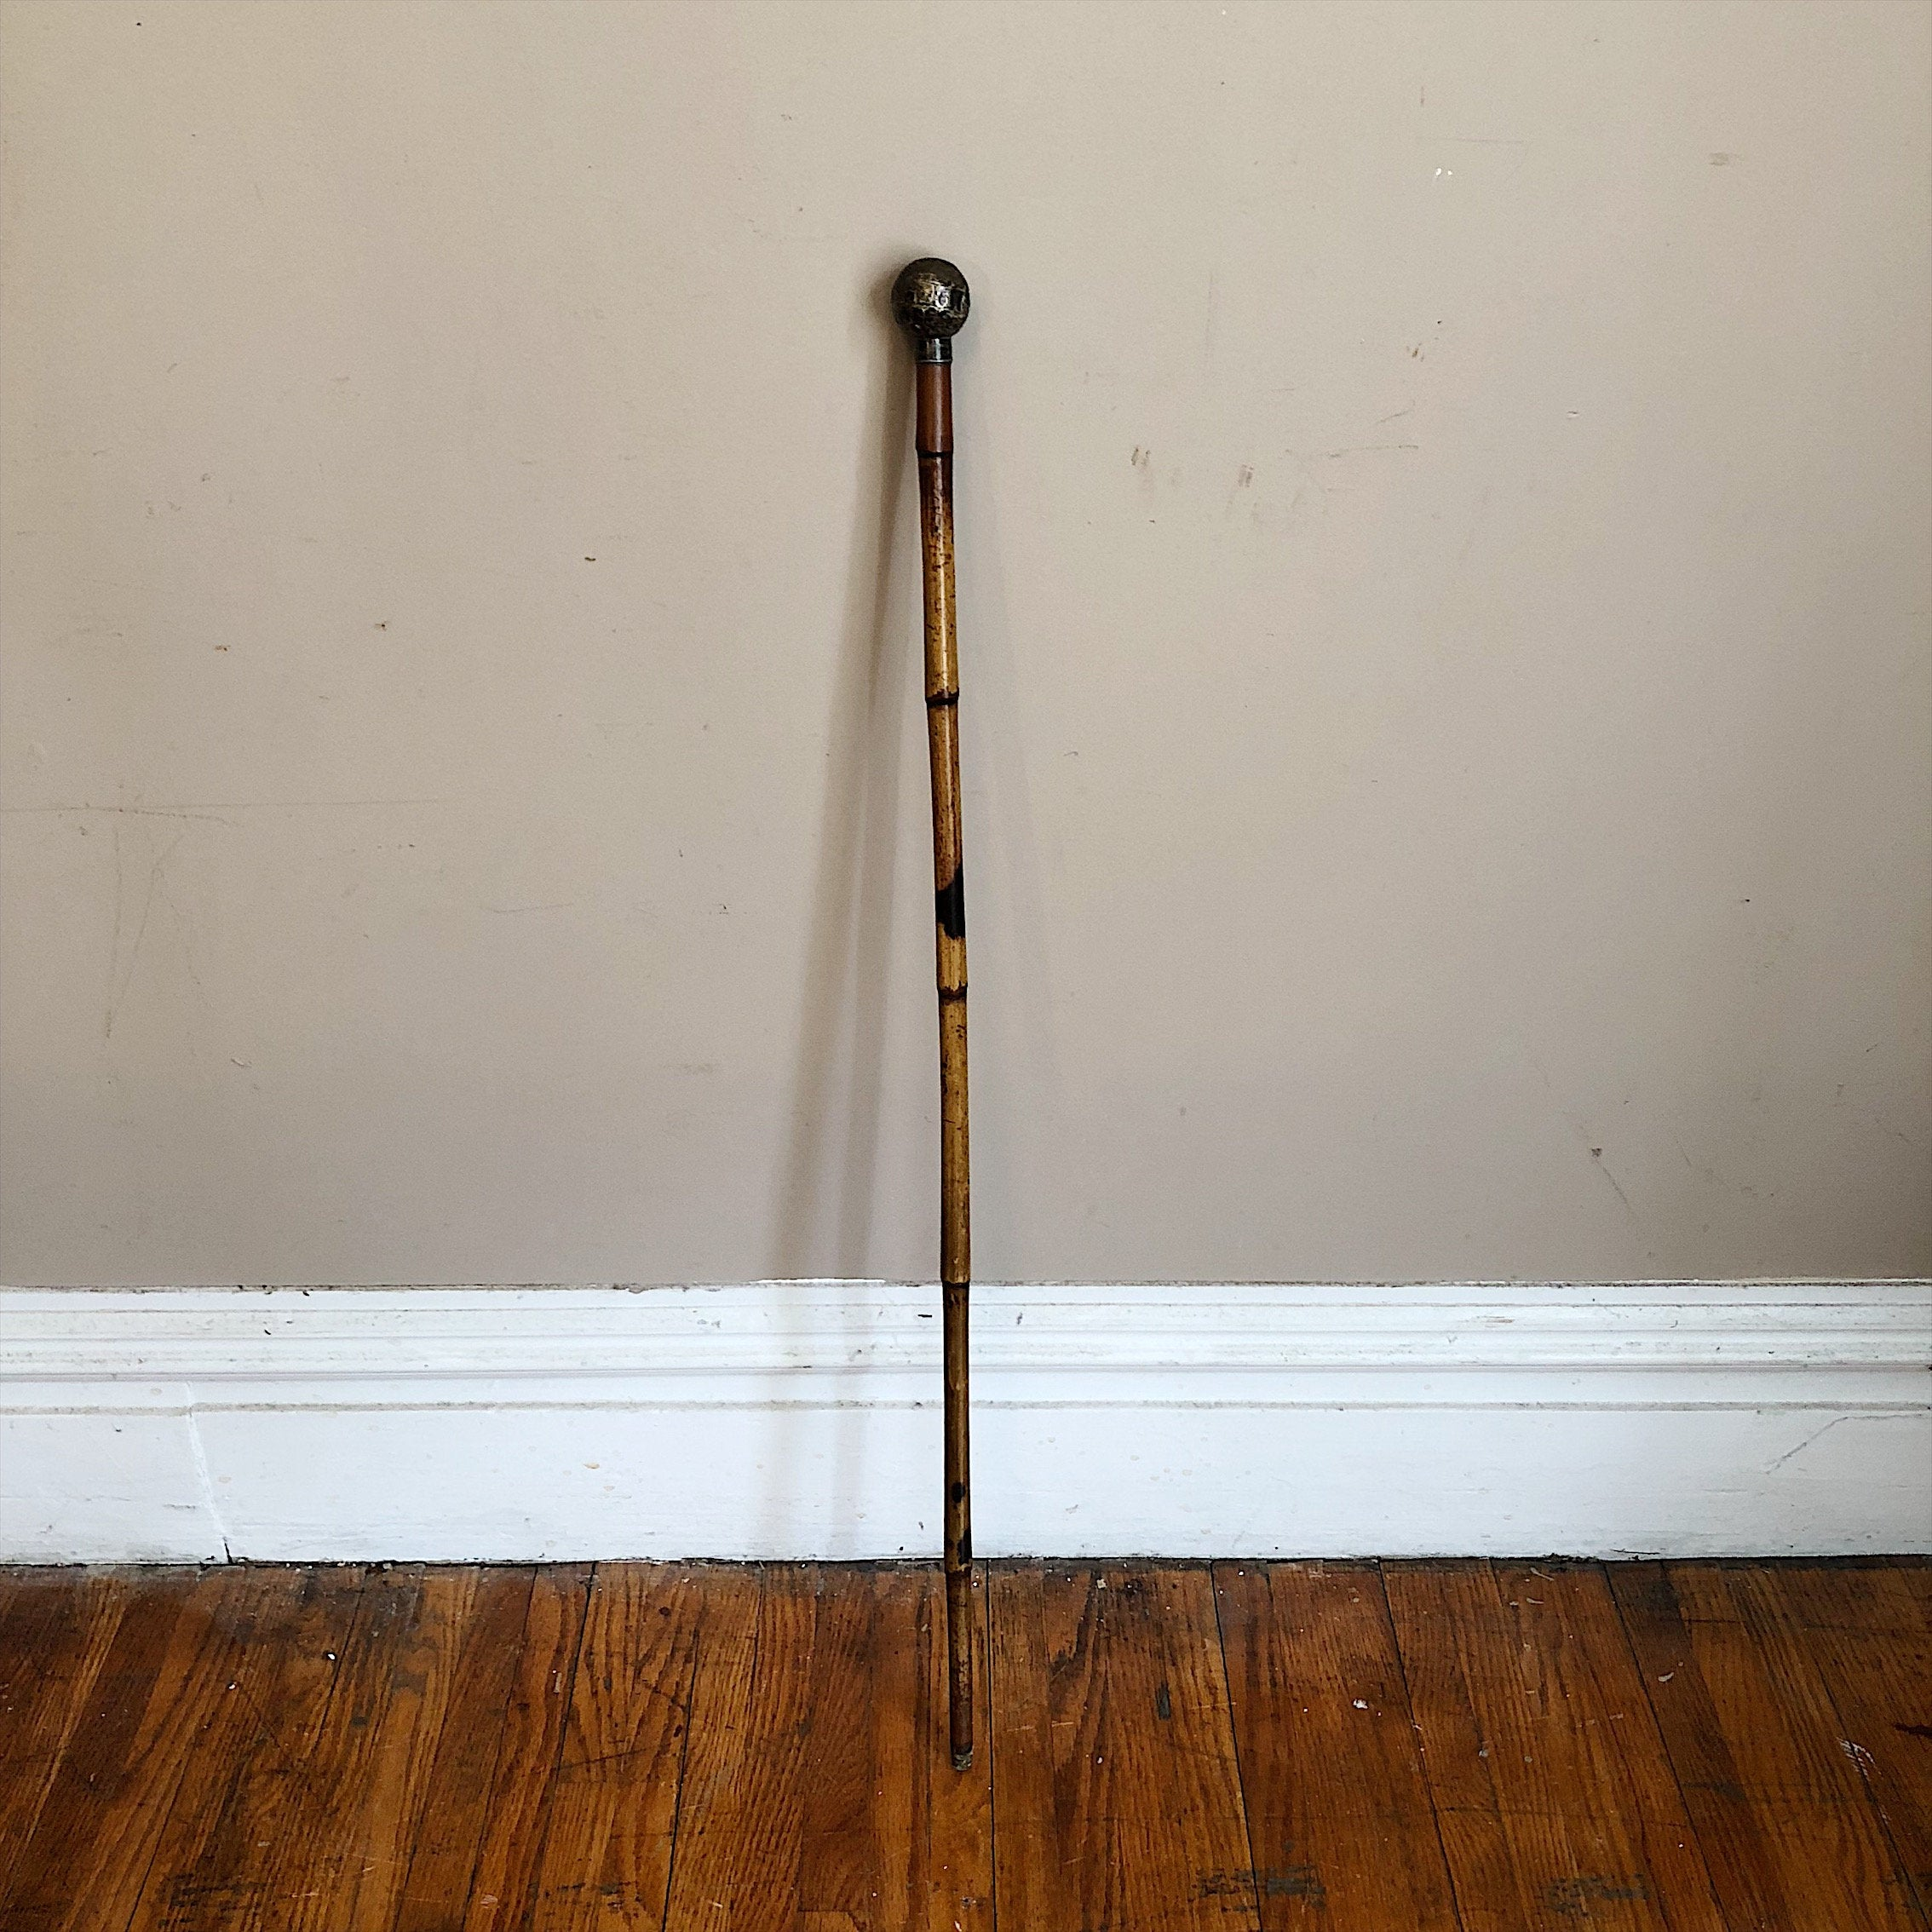 Antique Silver Walking Cane with Bamboo Shaft - British - London 1886 - Hallmarked - Sterling Silver Marks - Victorian Cane - Peaky Blinders